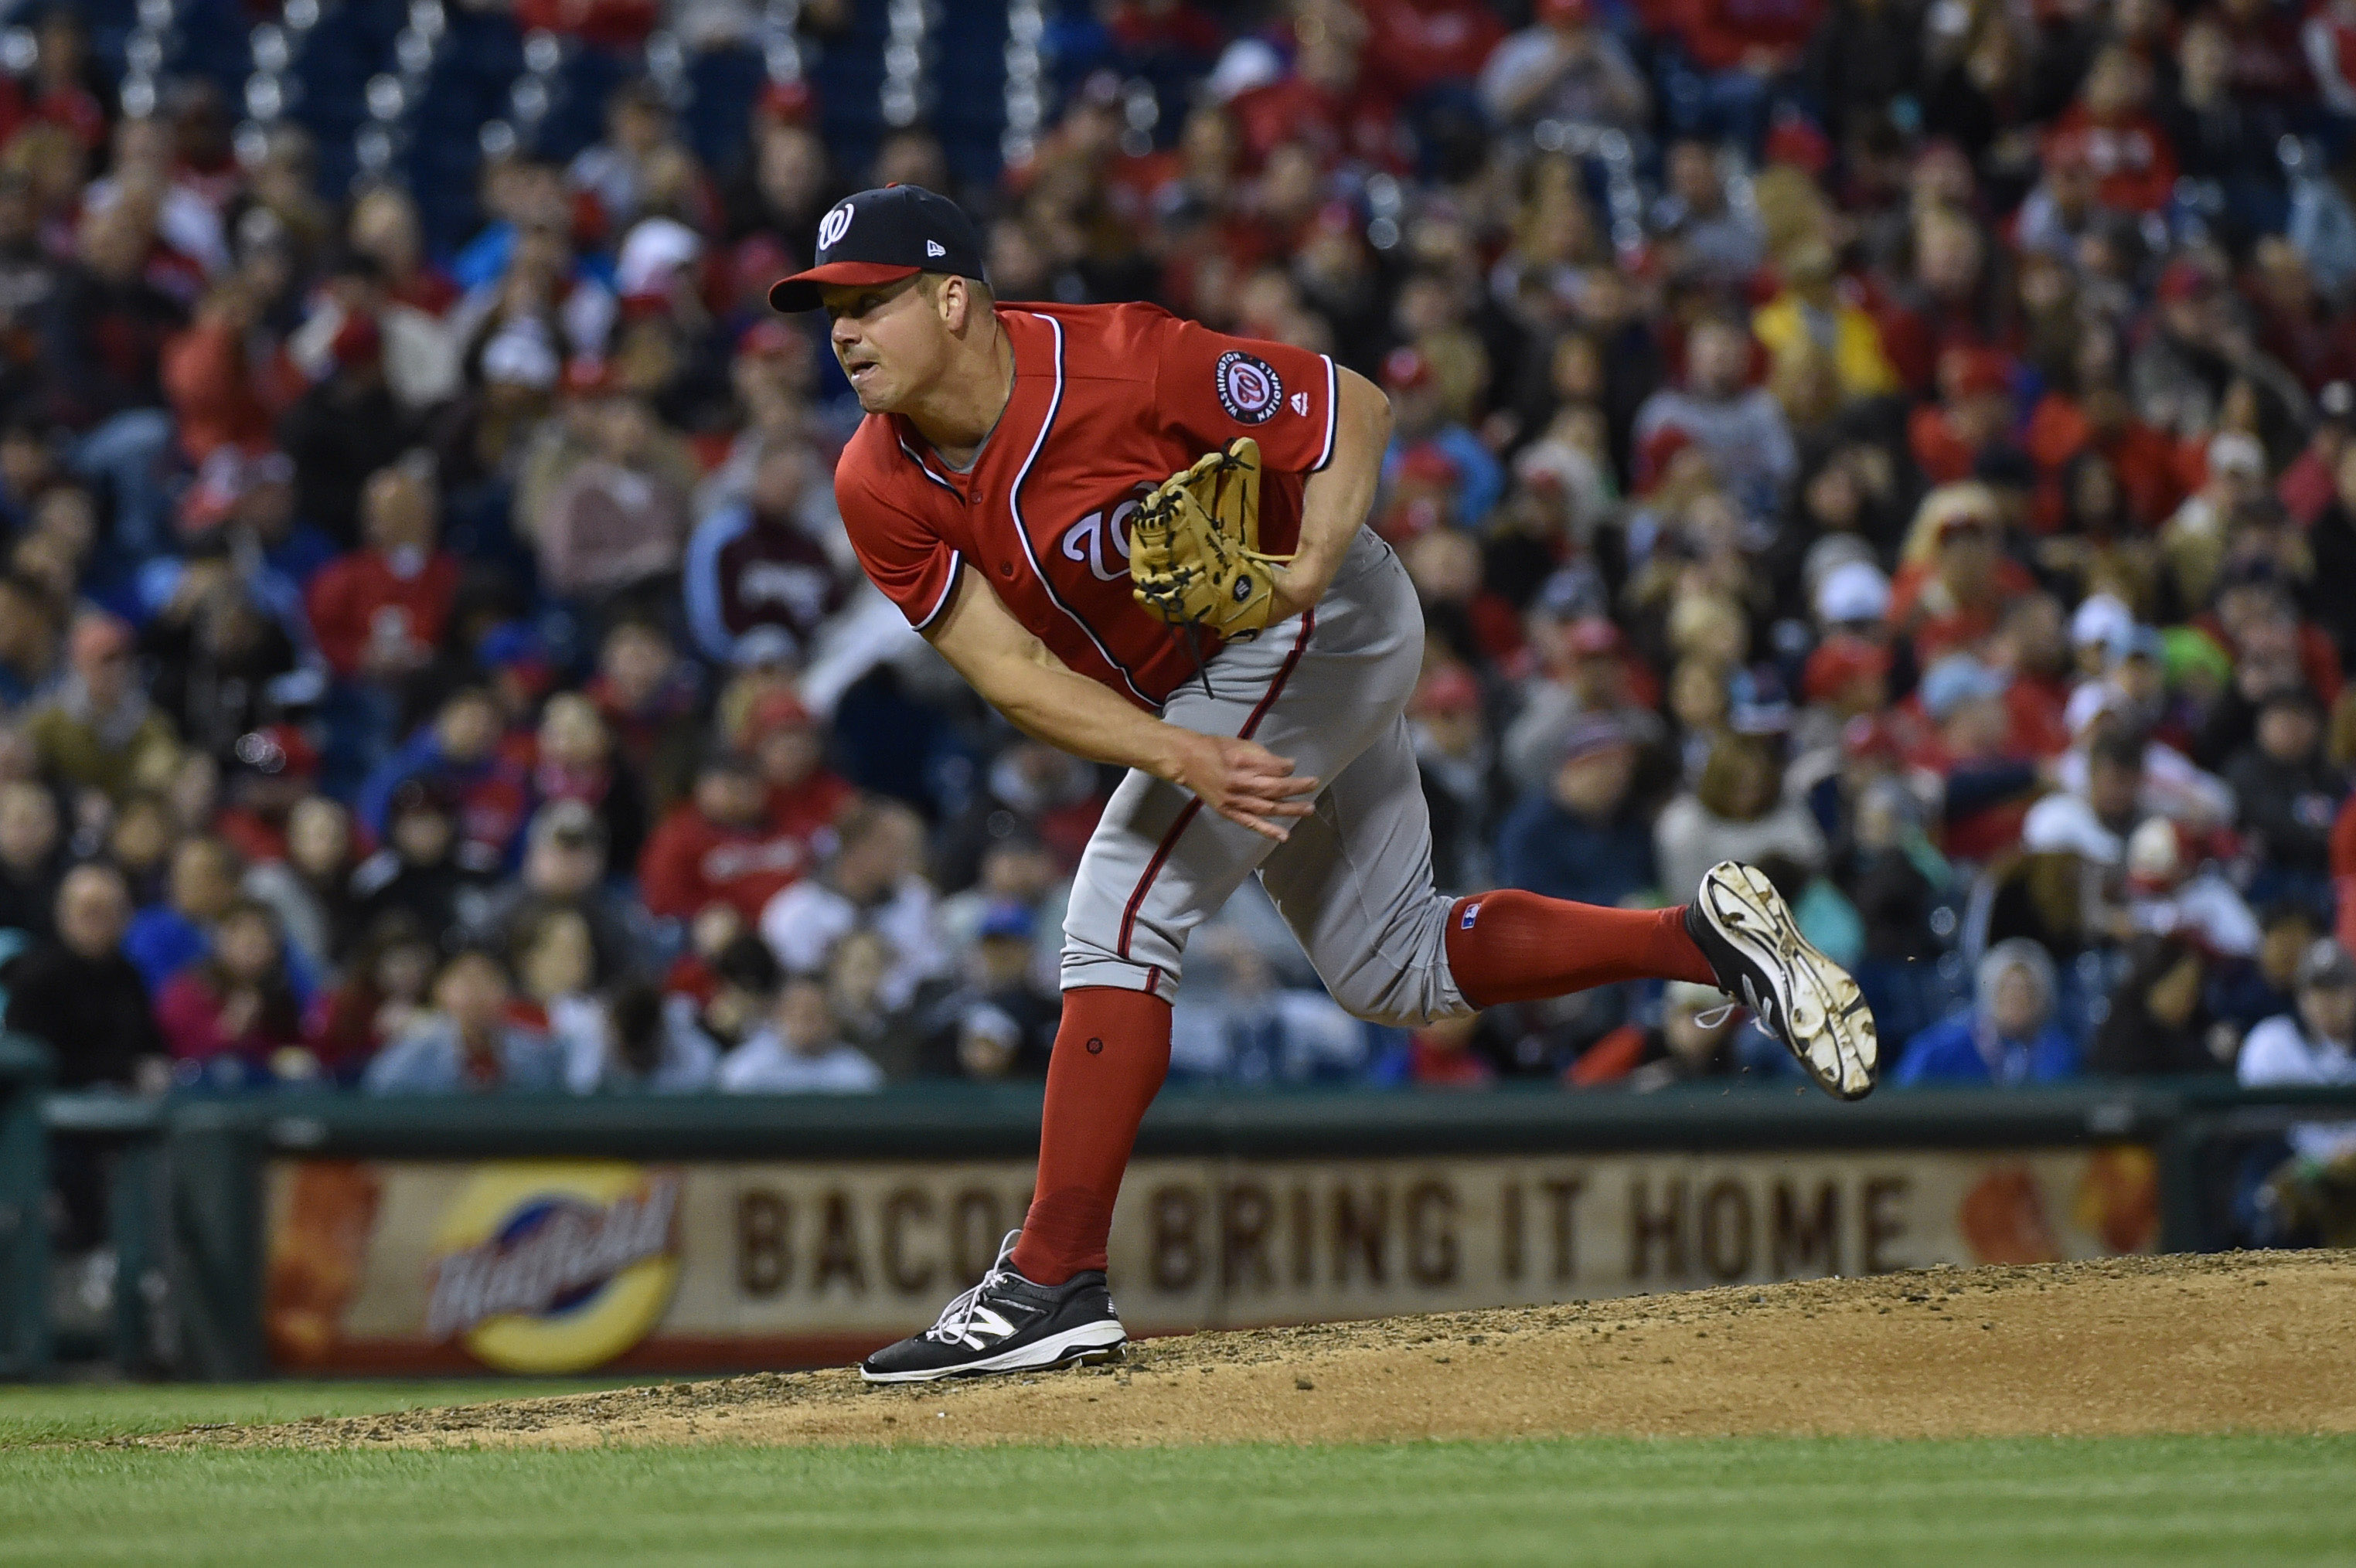 Murphy has 5 RBIs in Nats' win over Cards